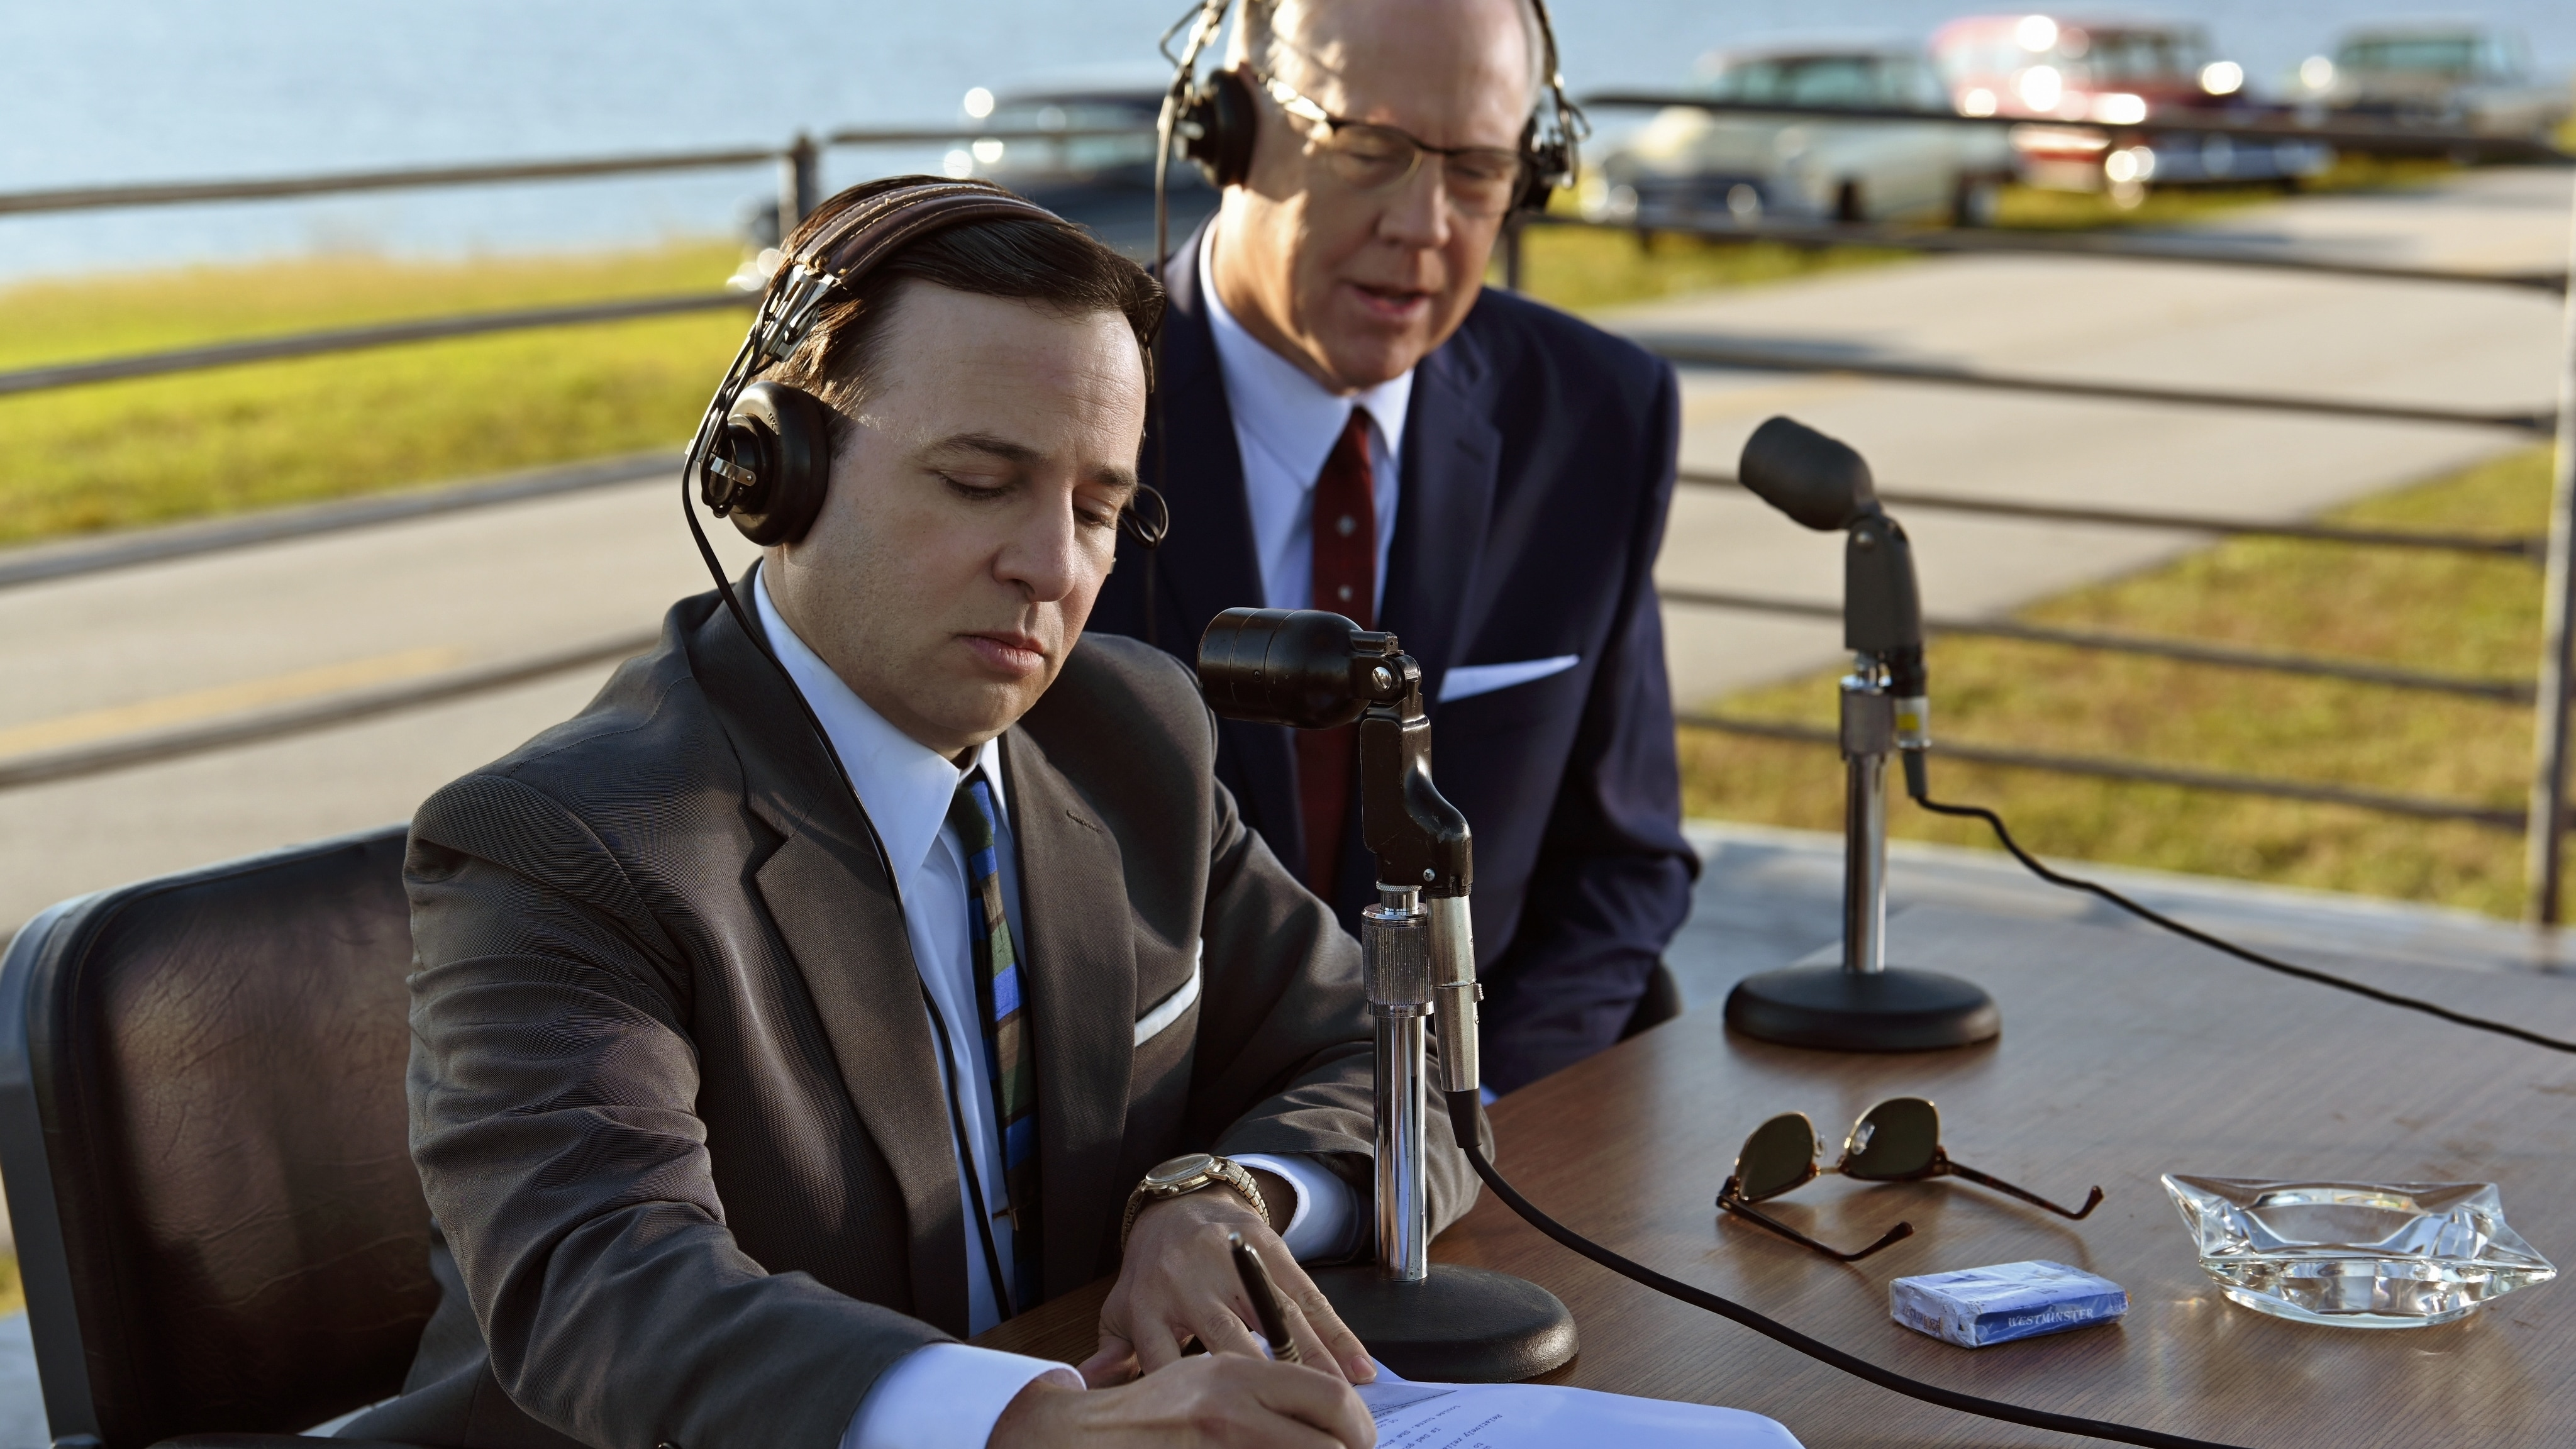 """John """"Shorty"""" Powers (L) played by Danny Strong during the Mercury-Redstone launch in National Geographic's THE RIGHT STUFF streaming on Disney+. (Credit: National Geographic/Gene Page)"""